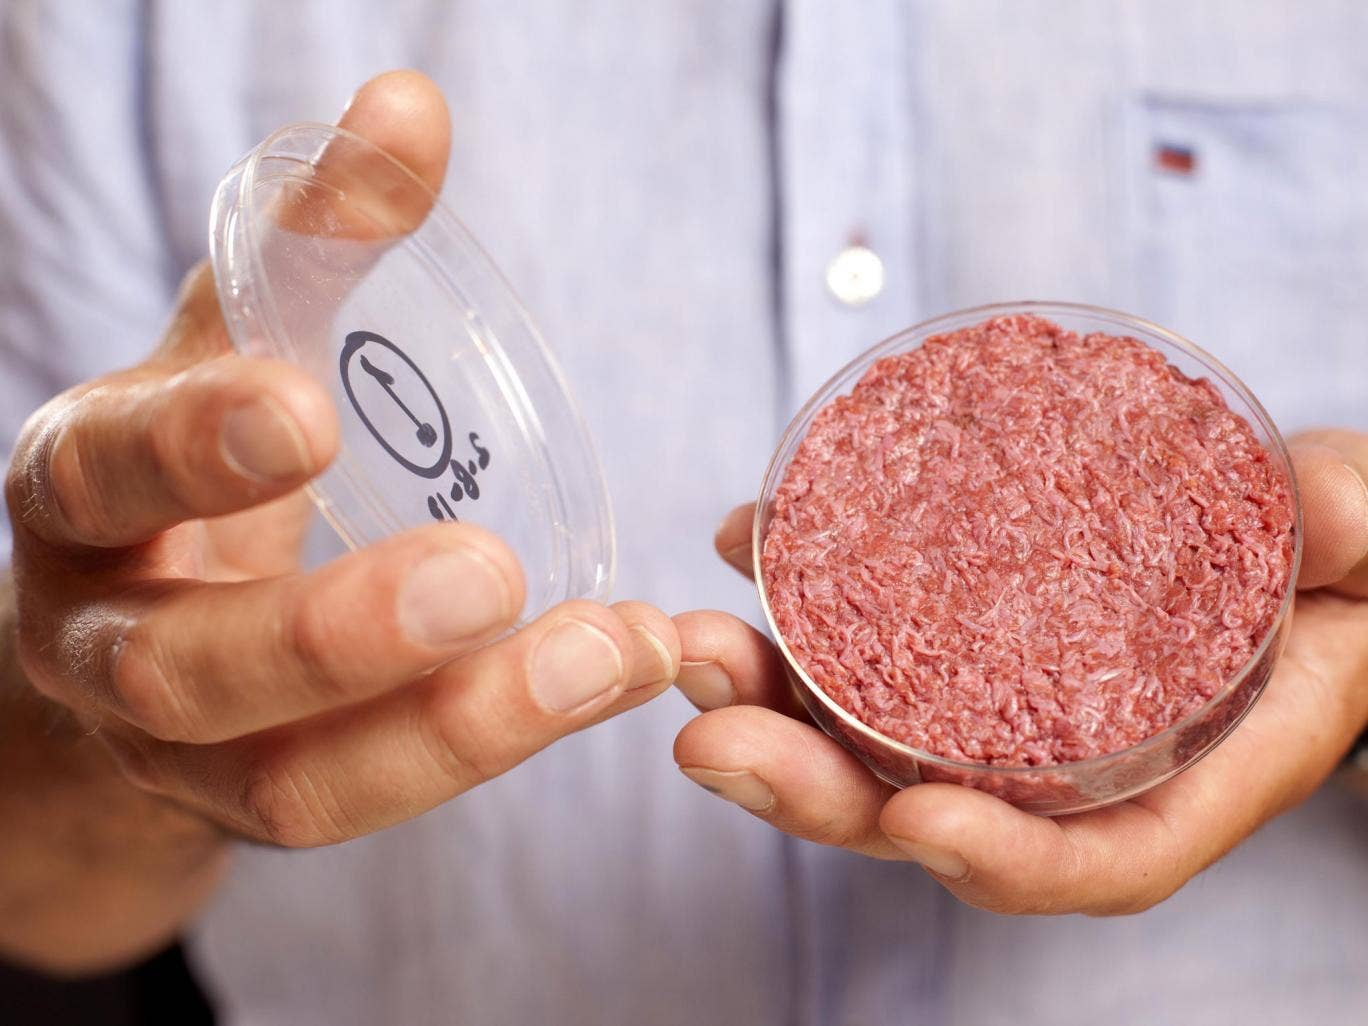 The lab-grown meat burger is made from Cultured Beef